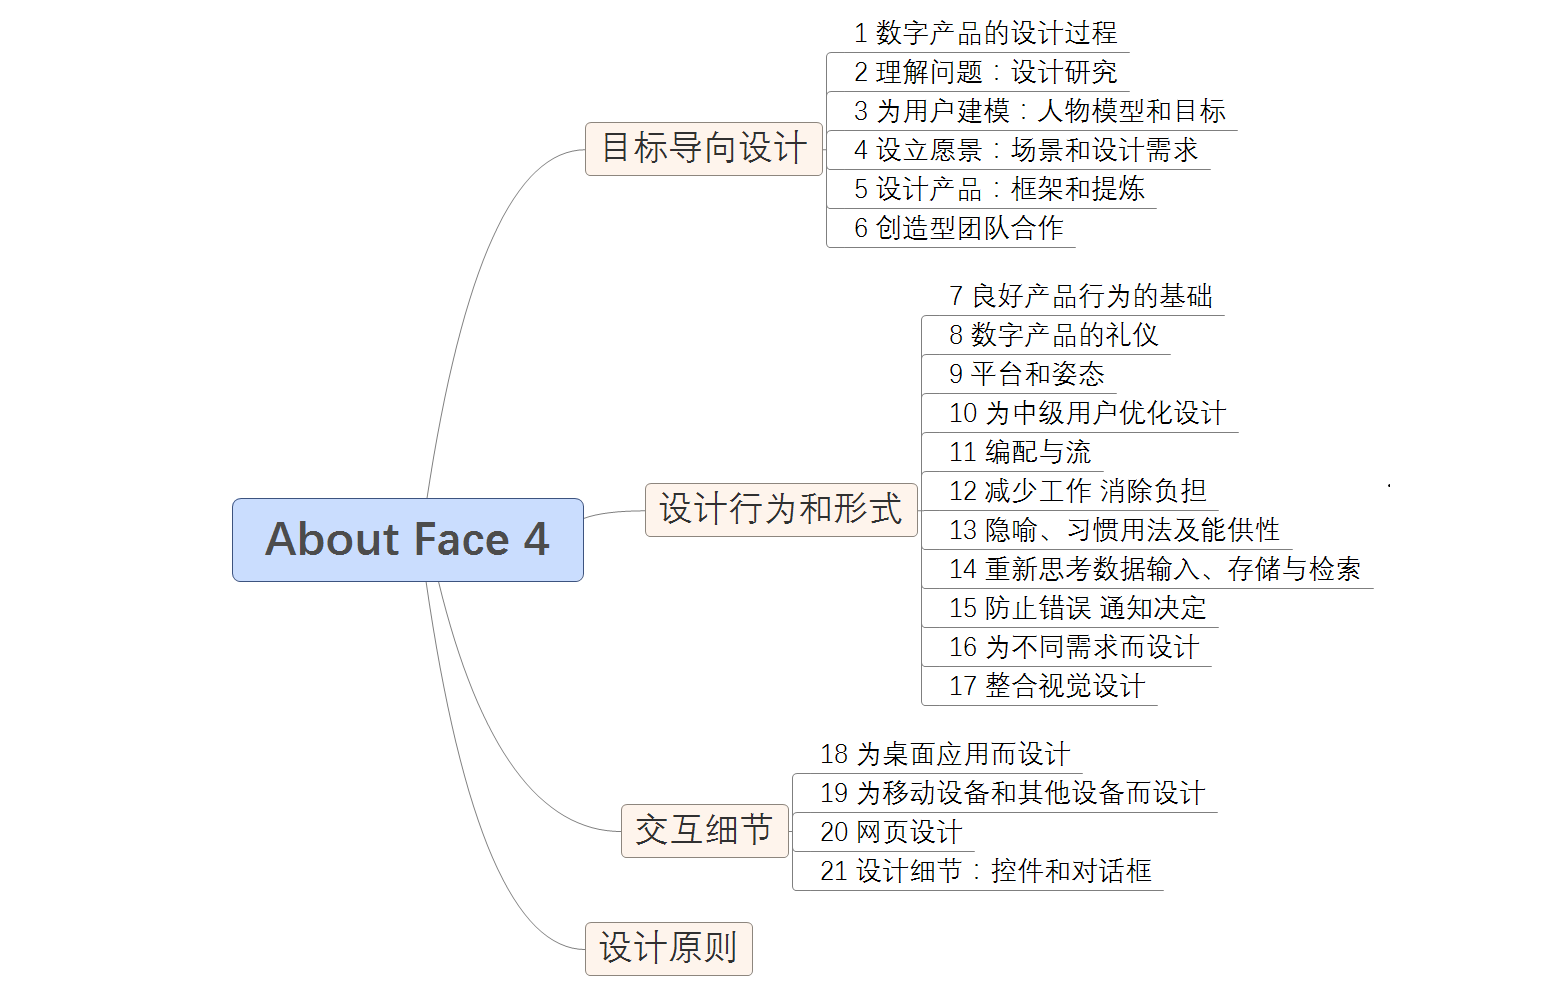 About Face 4.png